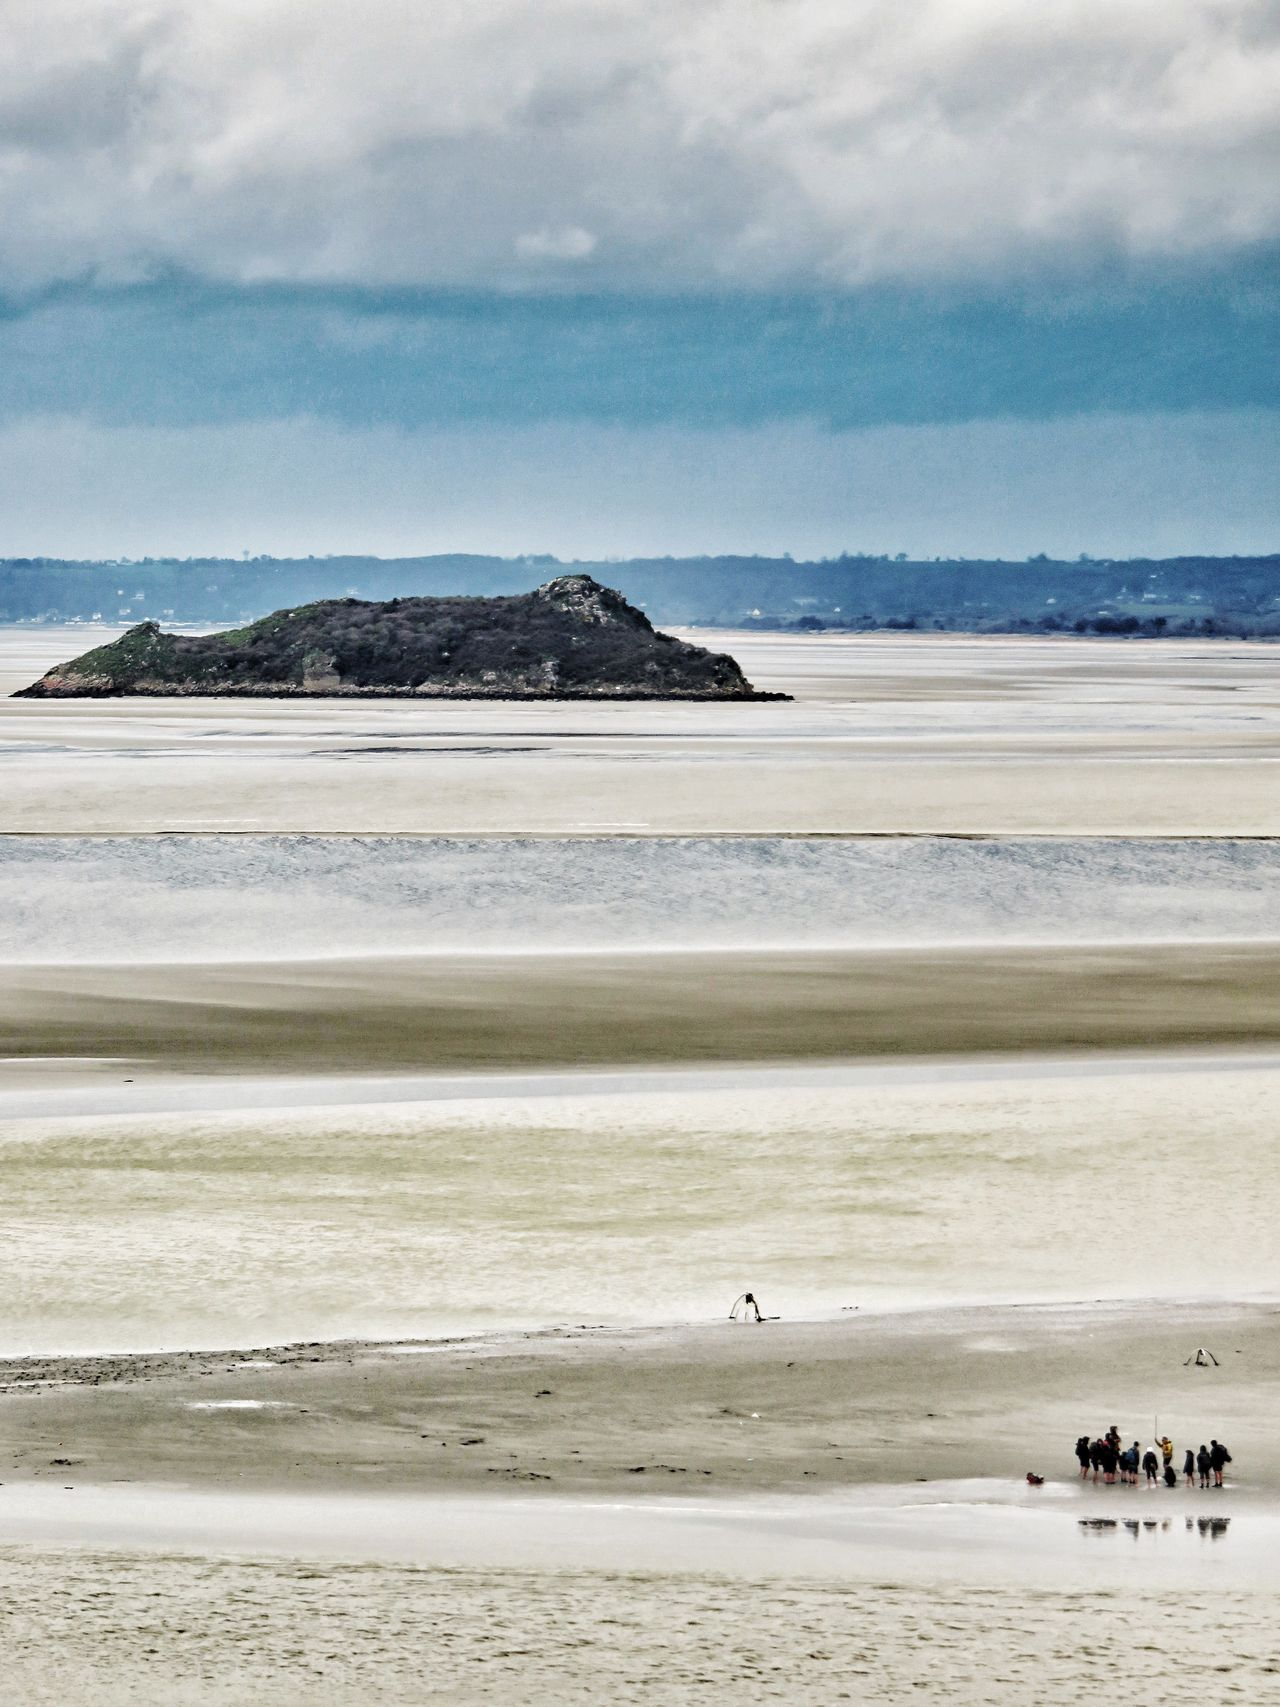 Landscapes With WhiteWall Mont Saint-Michel Bay Bay Area Hill Landscape Landscape_Collection Landscape_photography EyeEm Landscape Bretagne France People Scout Scouts Scouting Low Tide Prespective Check This Out Taking Photos Hello World Tourist Attraction  Tourists